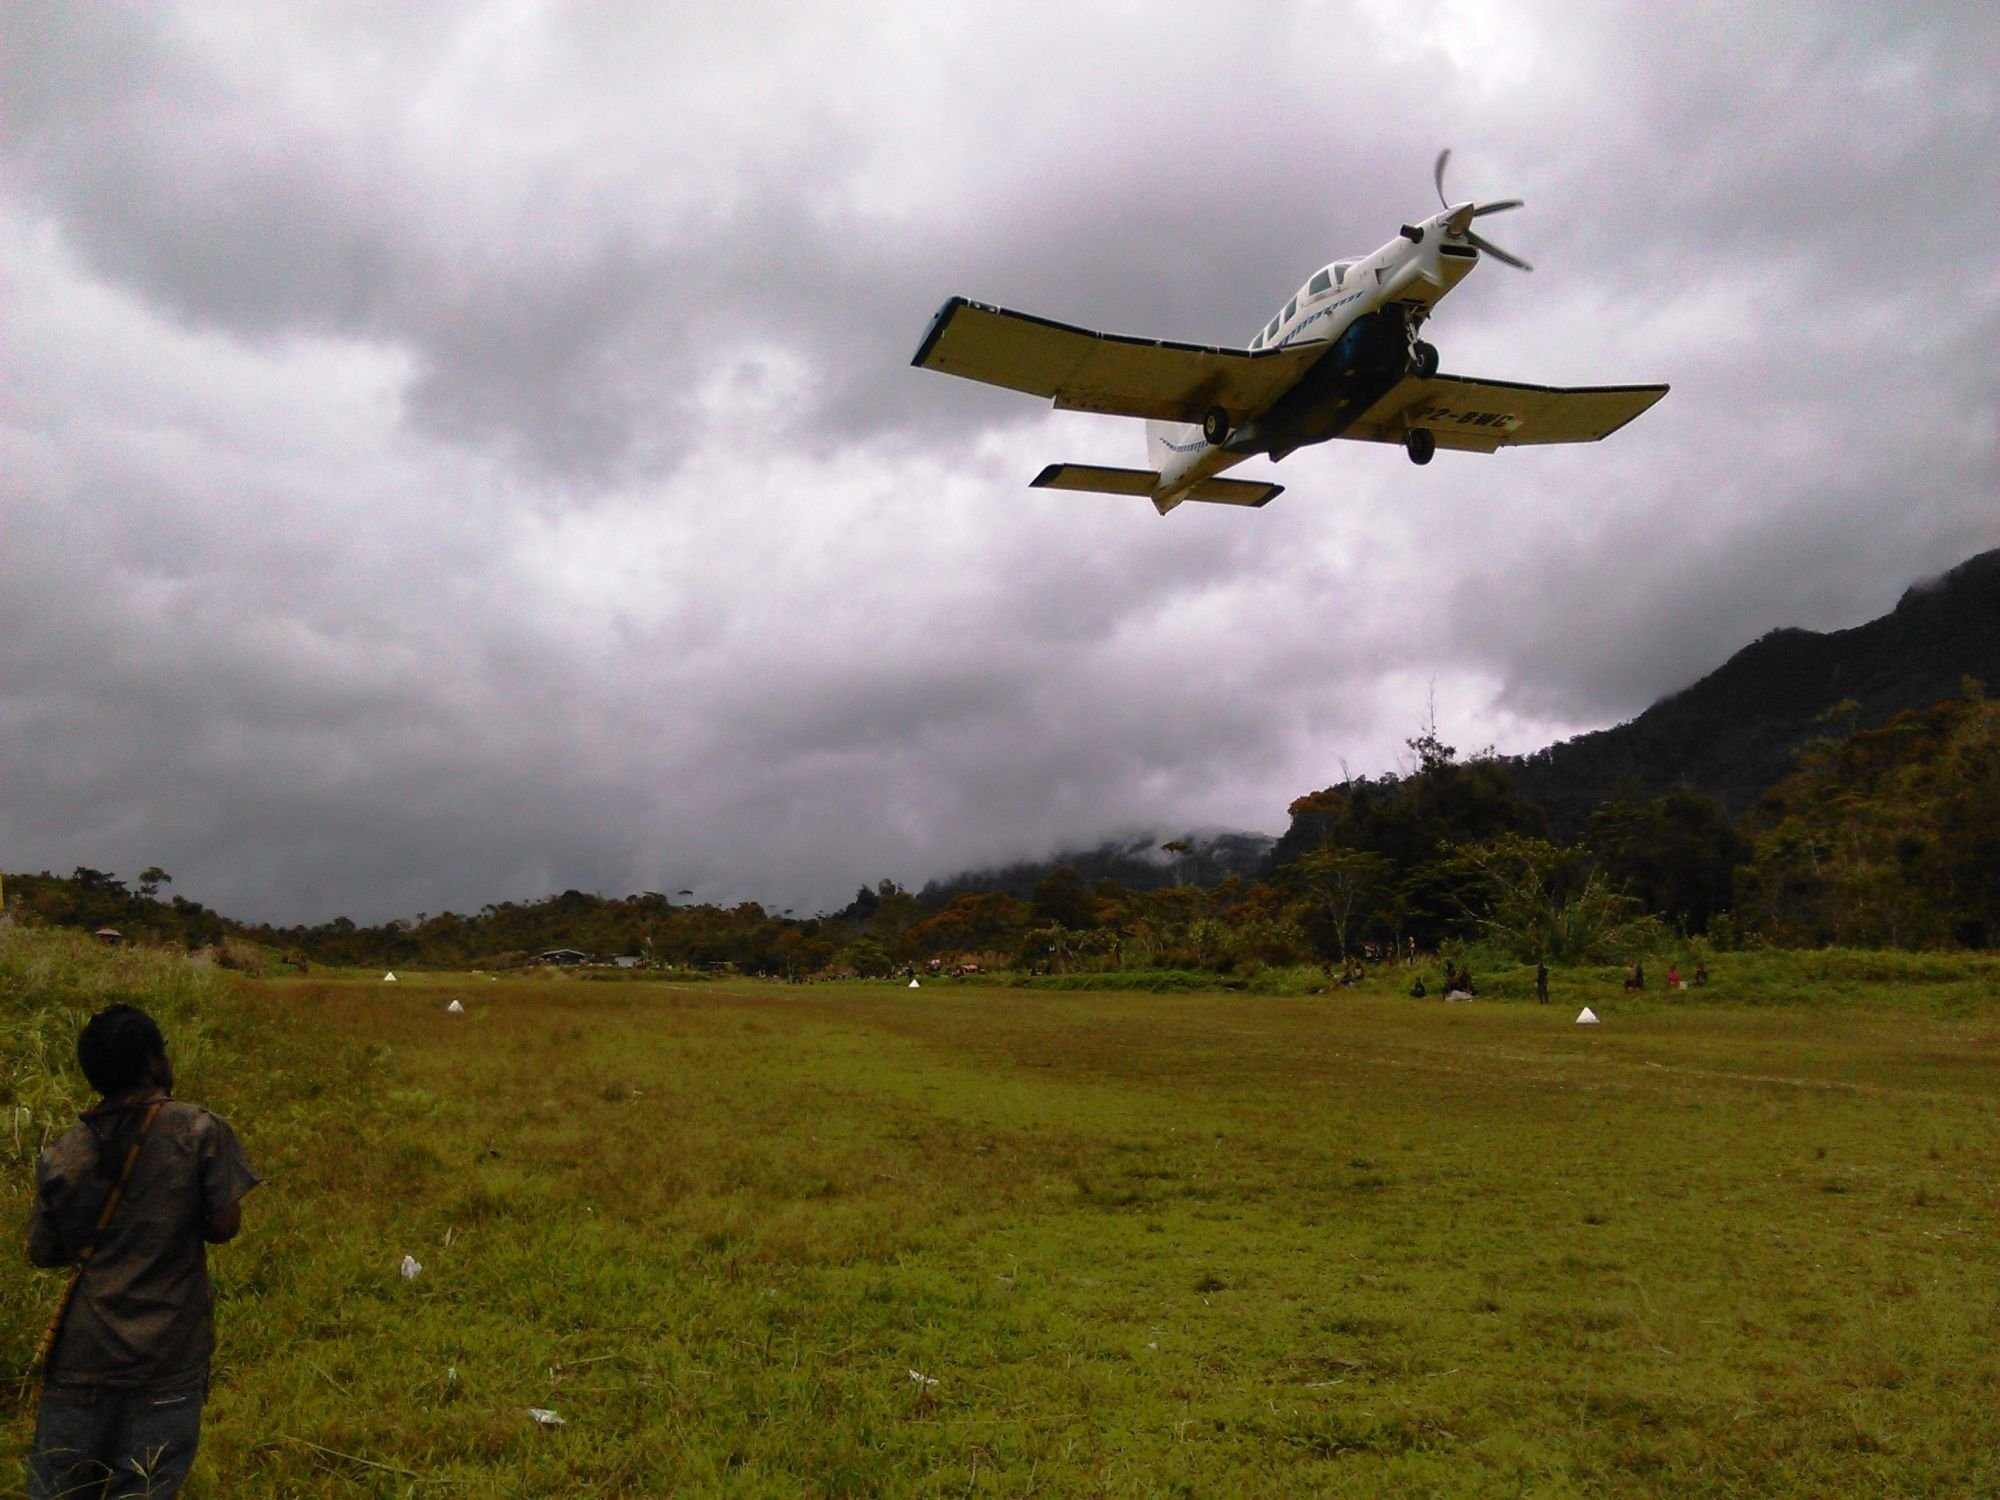 The Central Aviation Aircraft is taking off from Daburap Airstrip after vegetables have been loaded for selling at township in Kiunga and Tabubil in the Western province of Papua New Guinea.